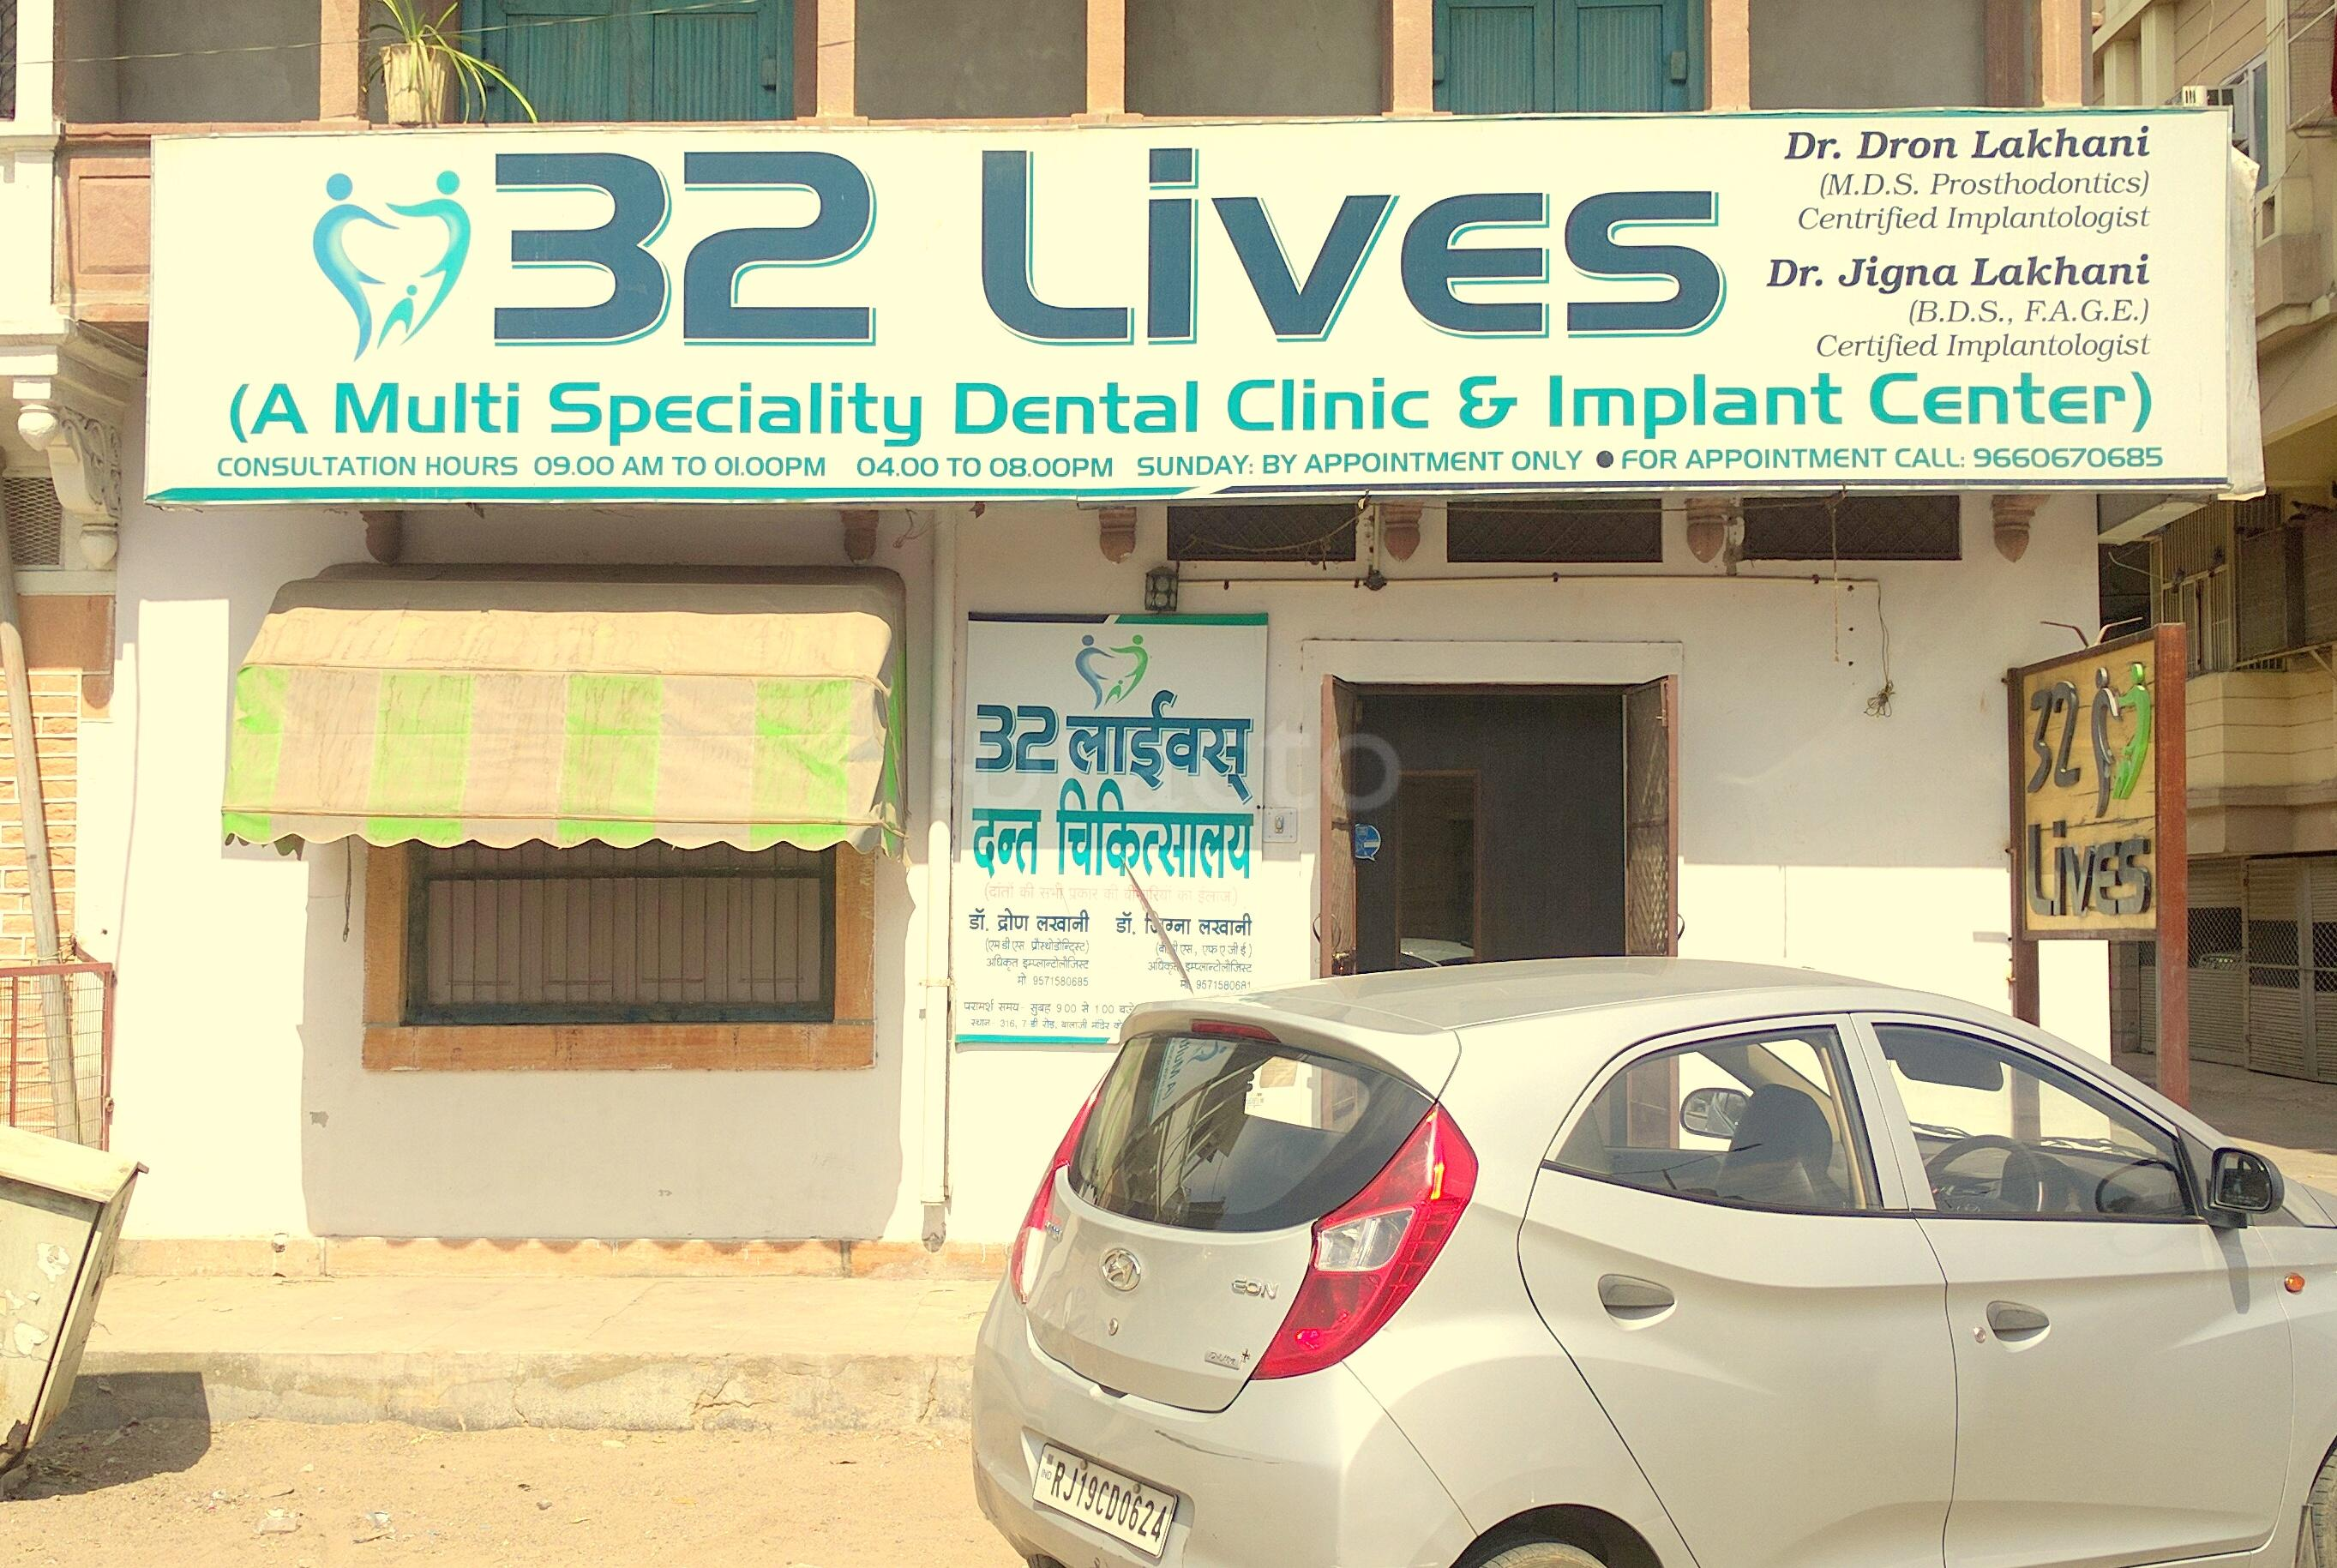 32 Lives Multispeciality Dental Clinic, Dental Clinic in